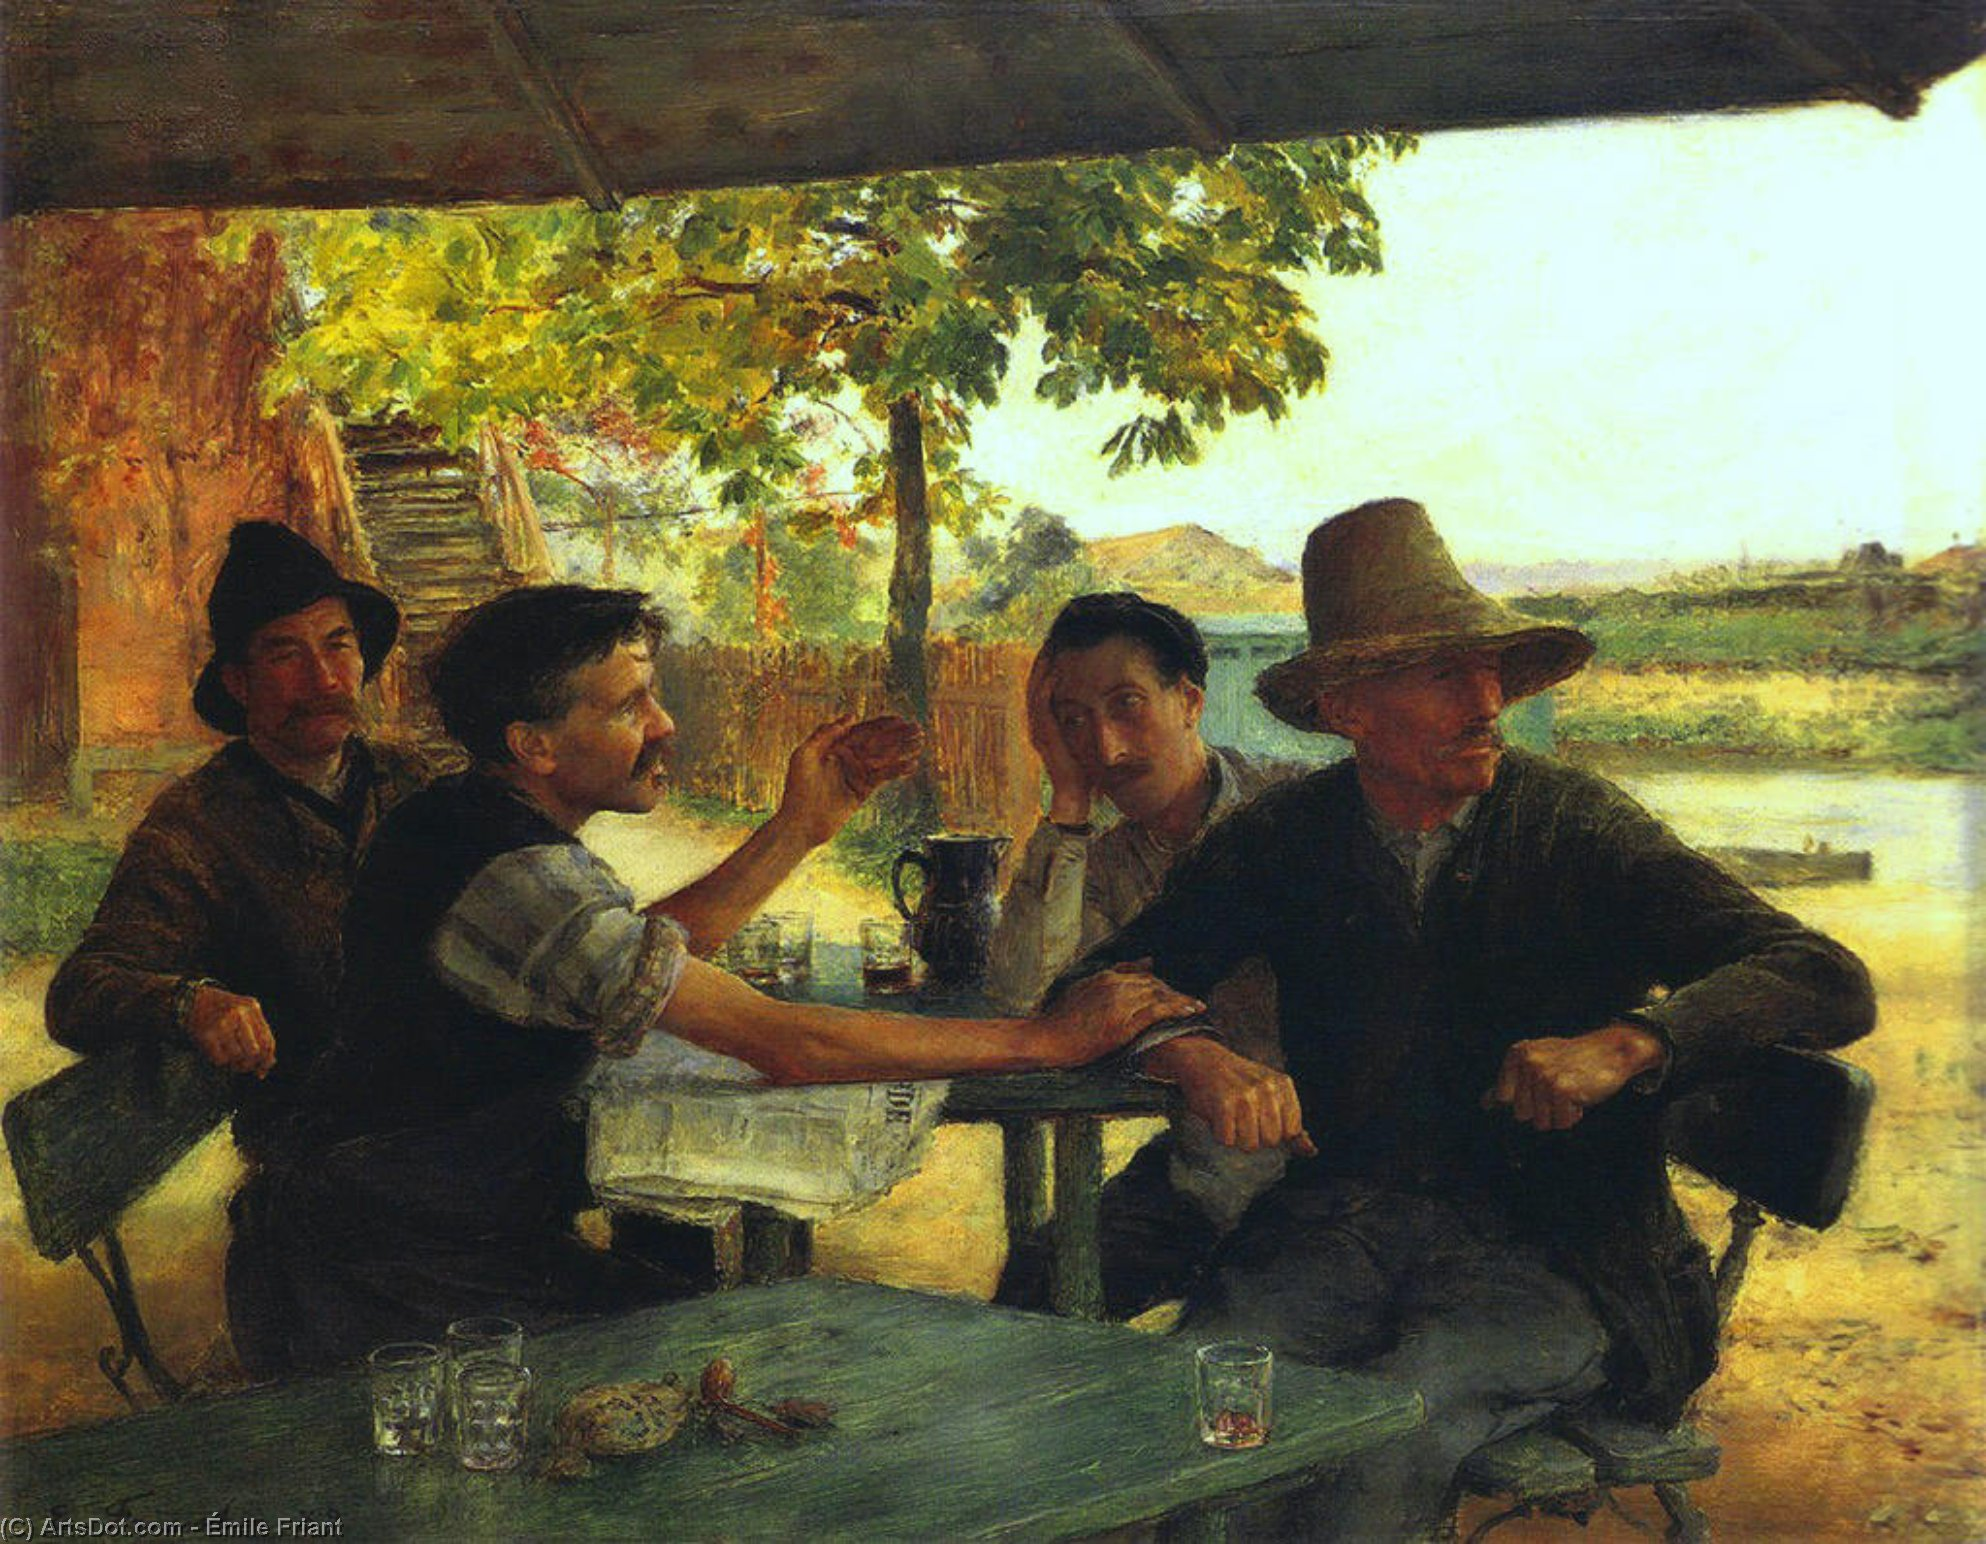 Political Dicussion, 1889 by Émile Friant (1863-1932, France)